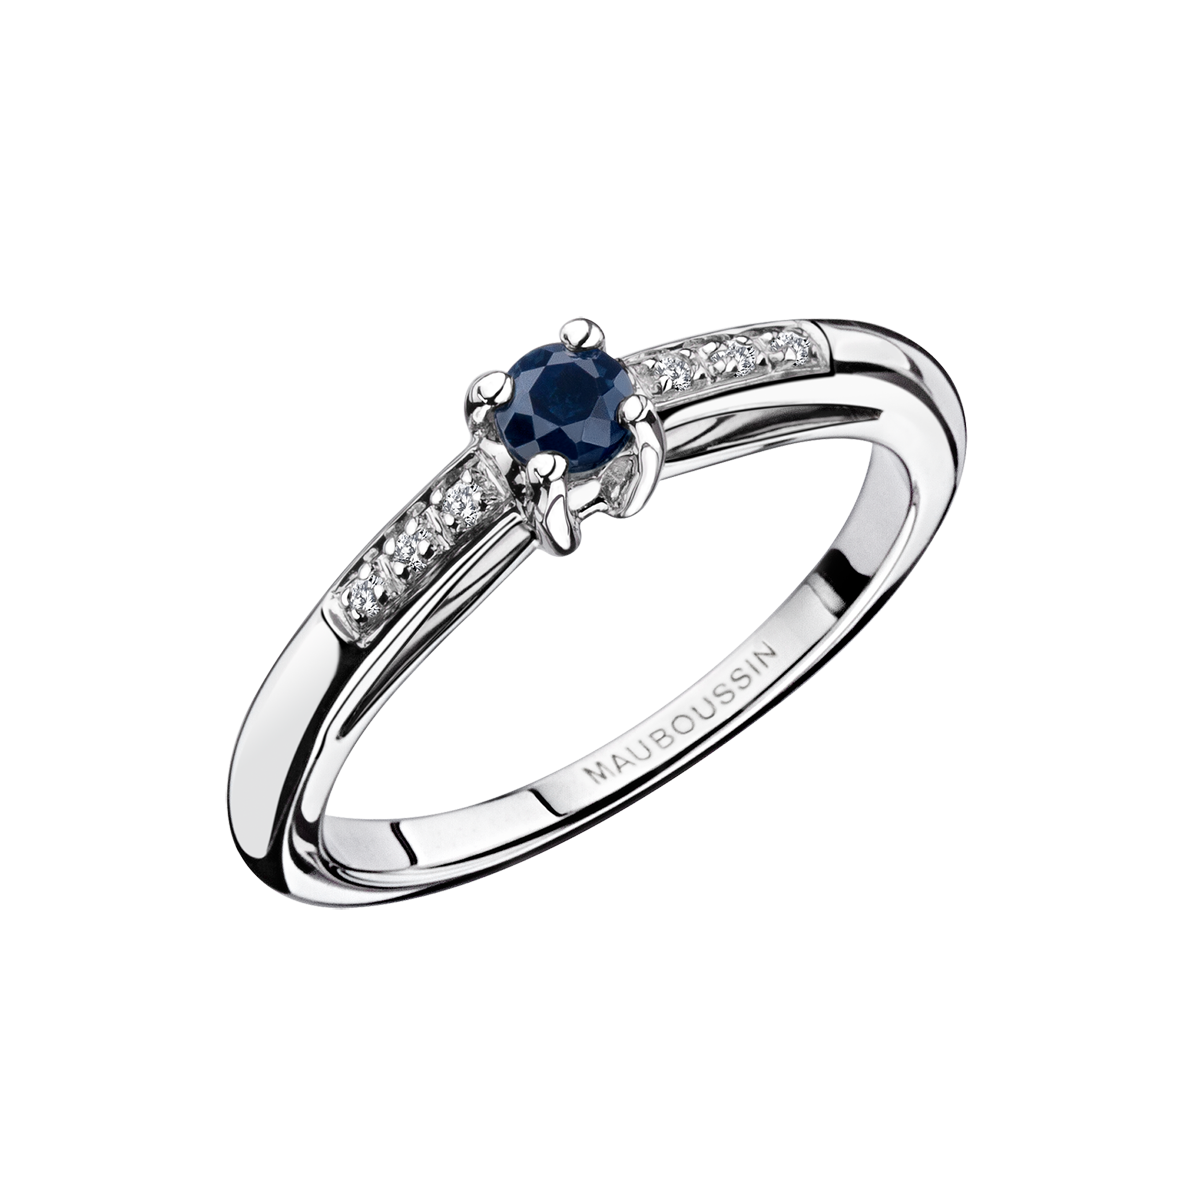 Top Bague Petit mot d'Amour, or blanc, saphir et diamants - Mauboussin  GA58